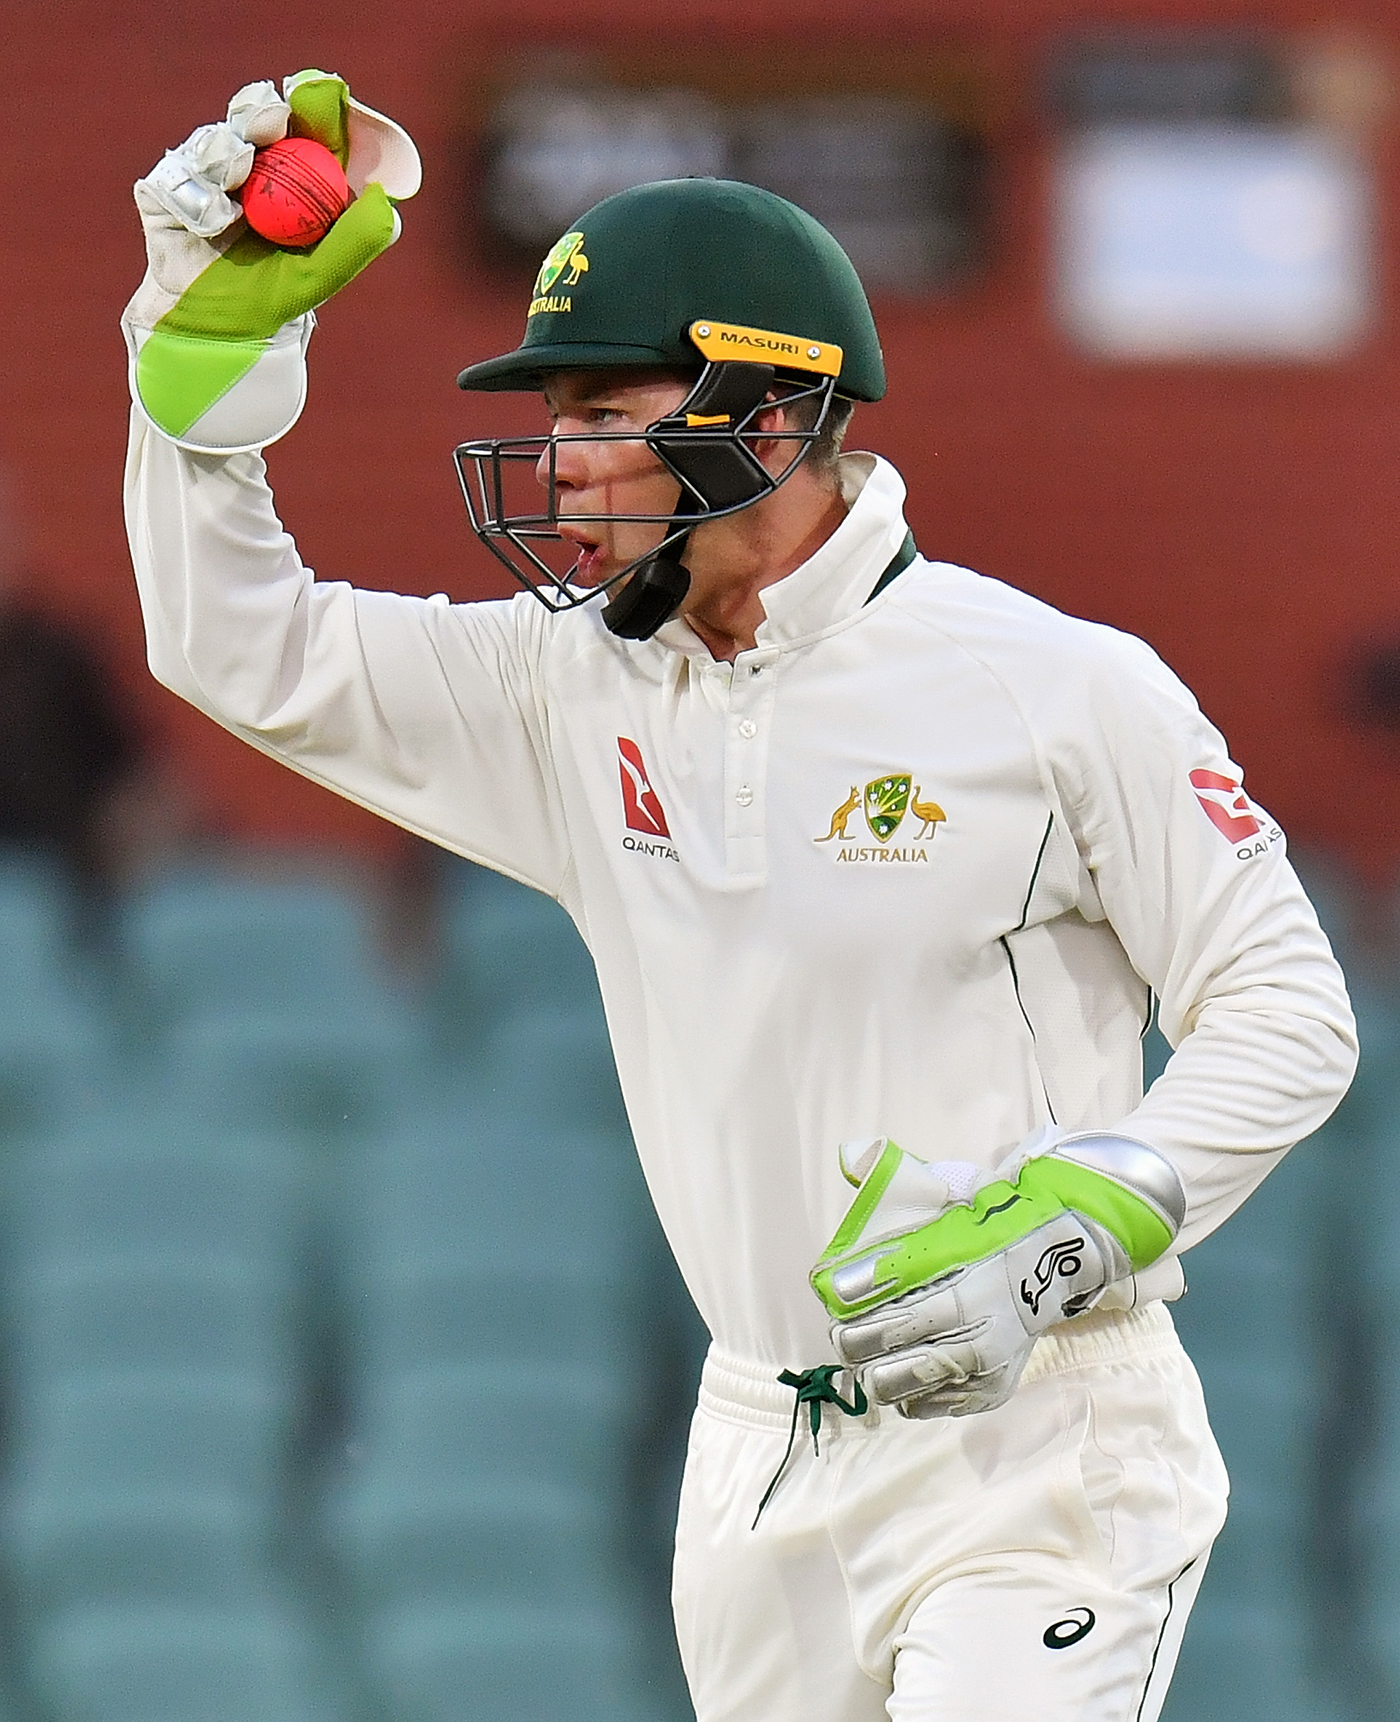 Ashes 2017/18: The Recall Is Amazing Reward For The Hard Work That I've Put In, Says Tim Paine 2